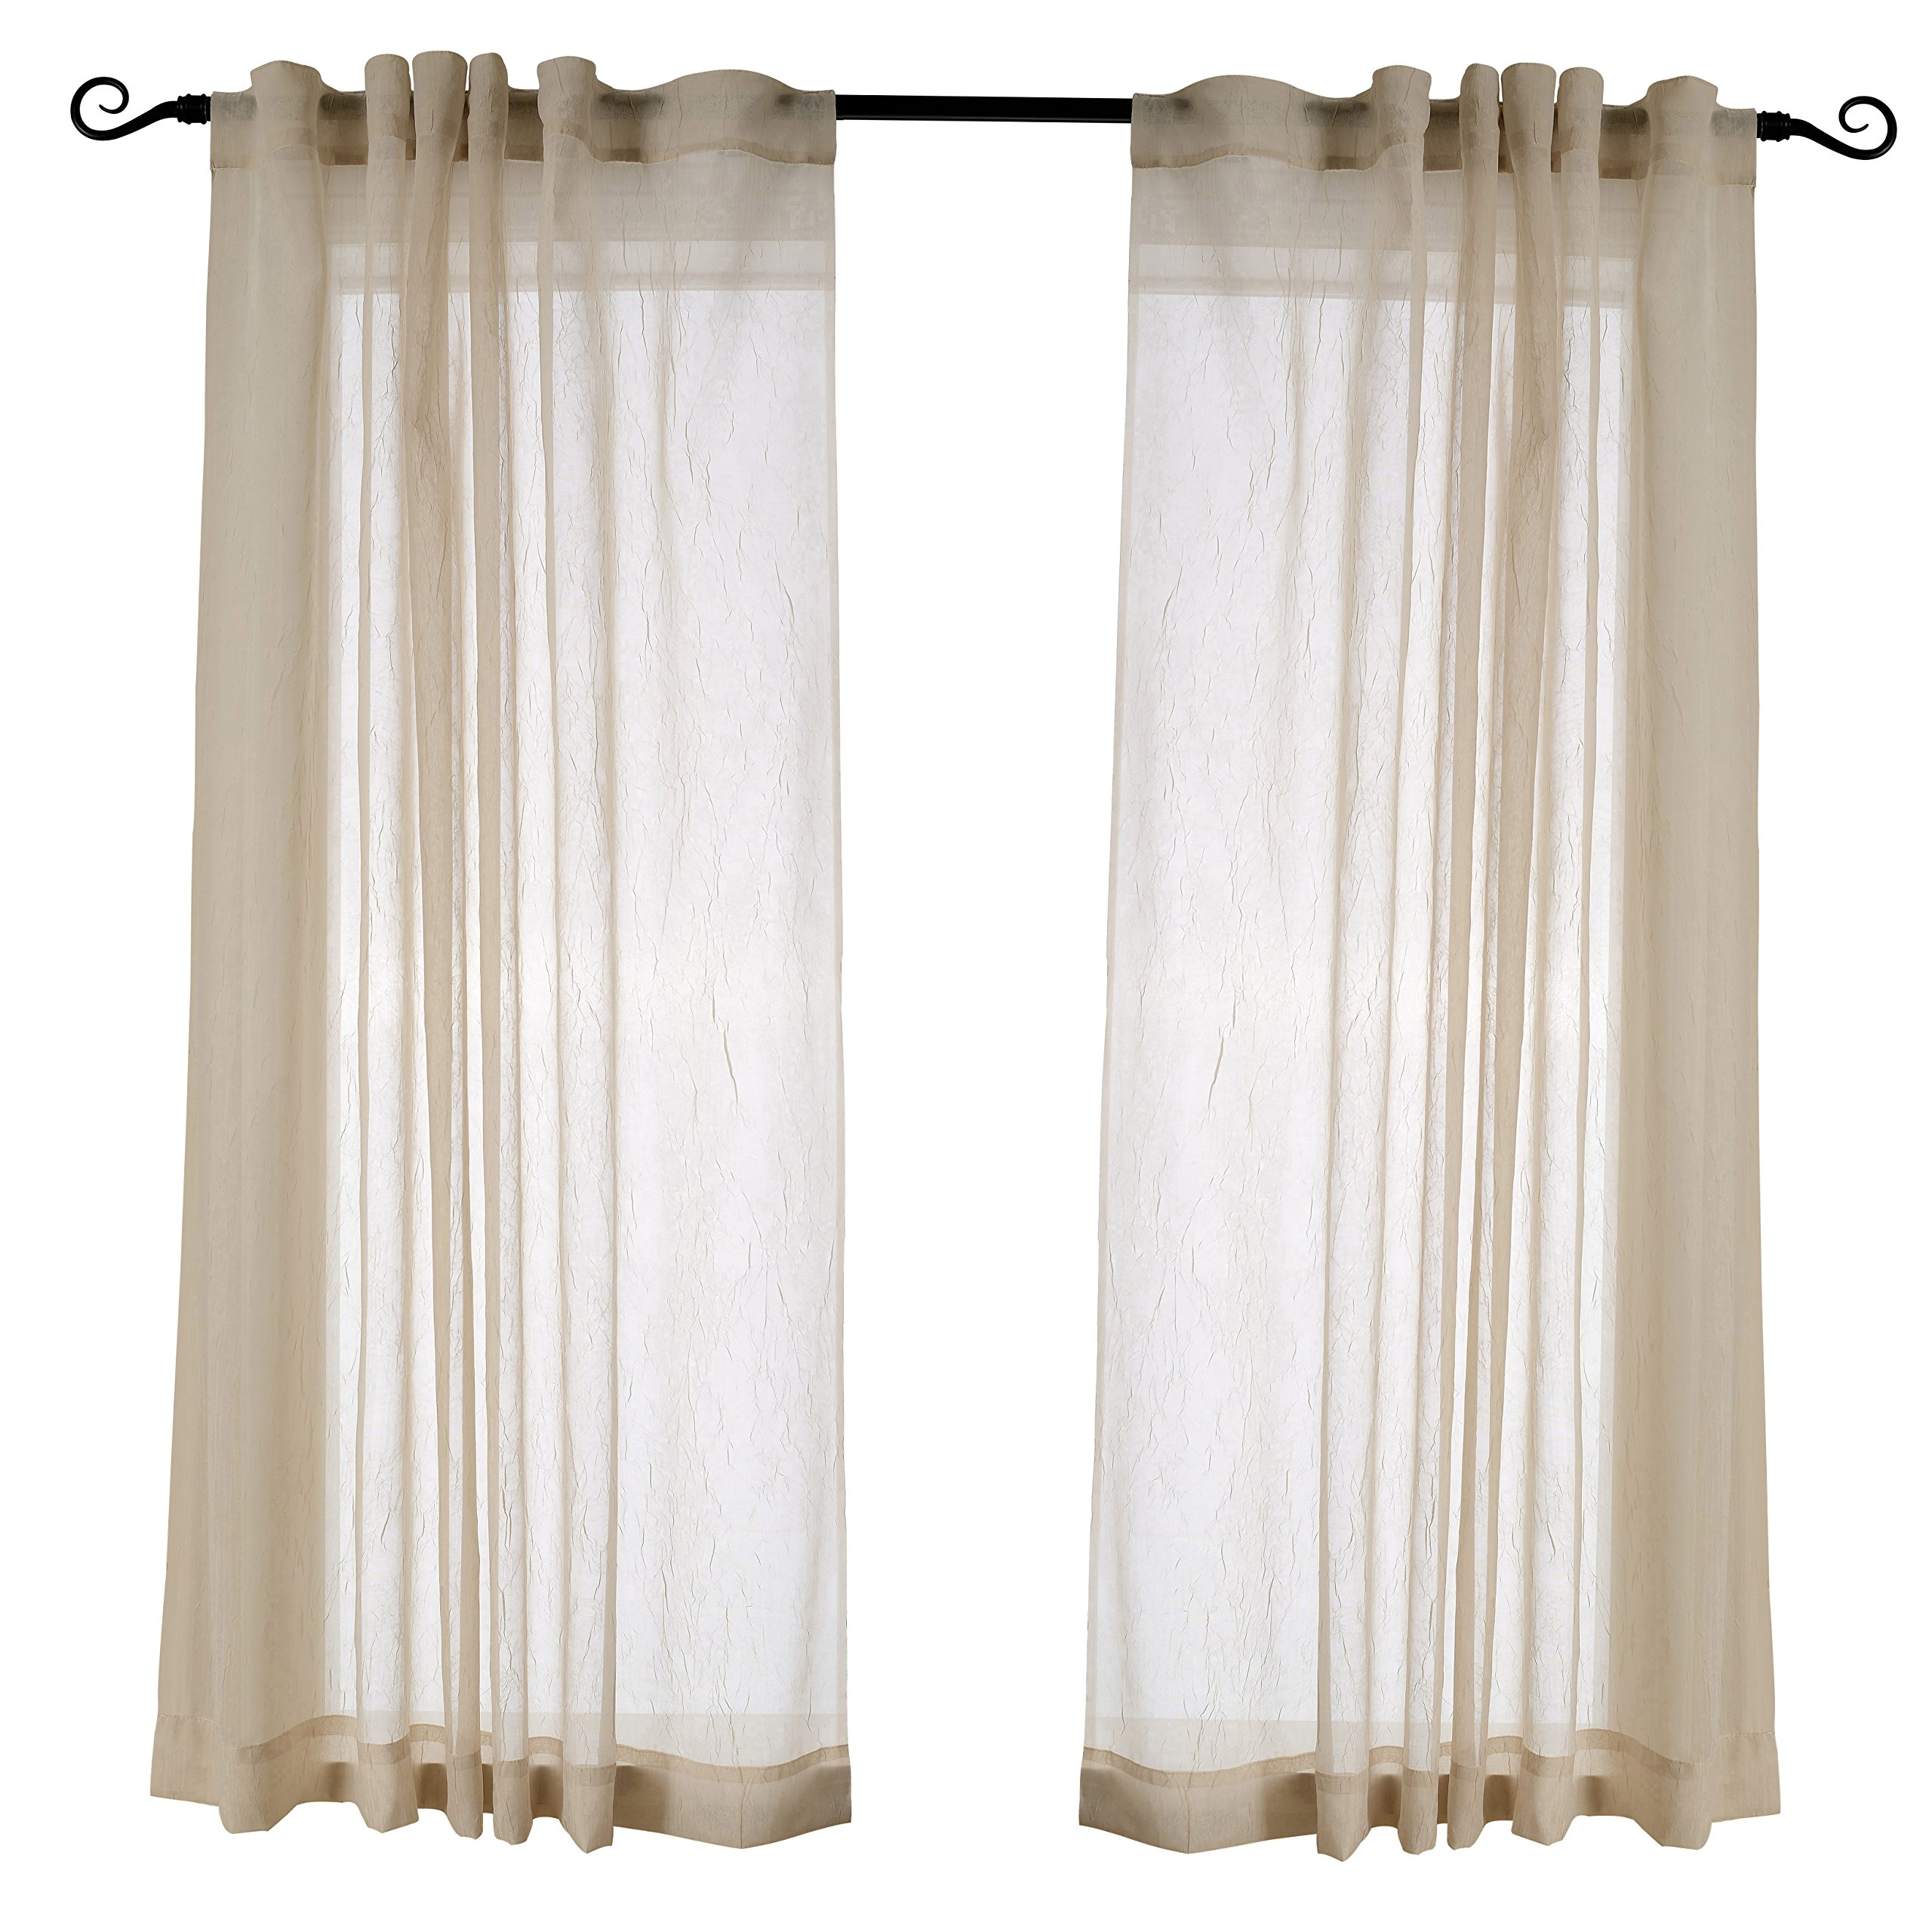 Sheer Kitchen Curtains Amazon Com: Living Room Sheer Curtains: Amazon.com